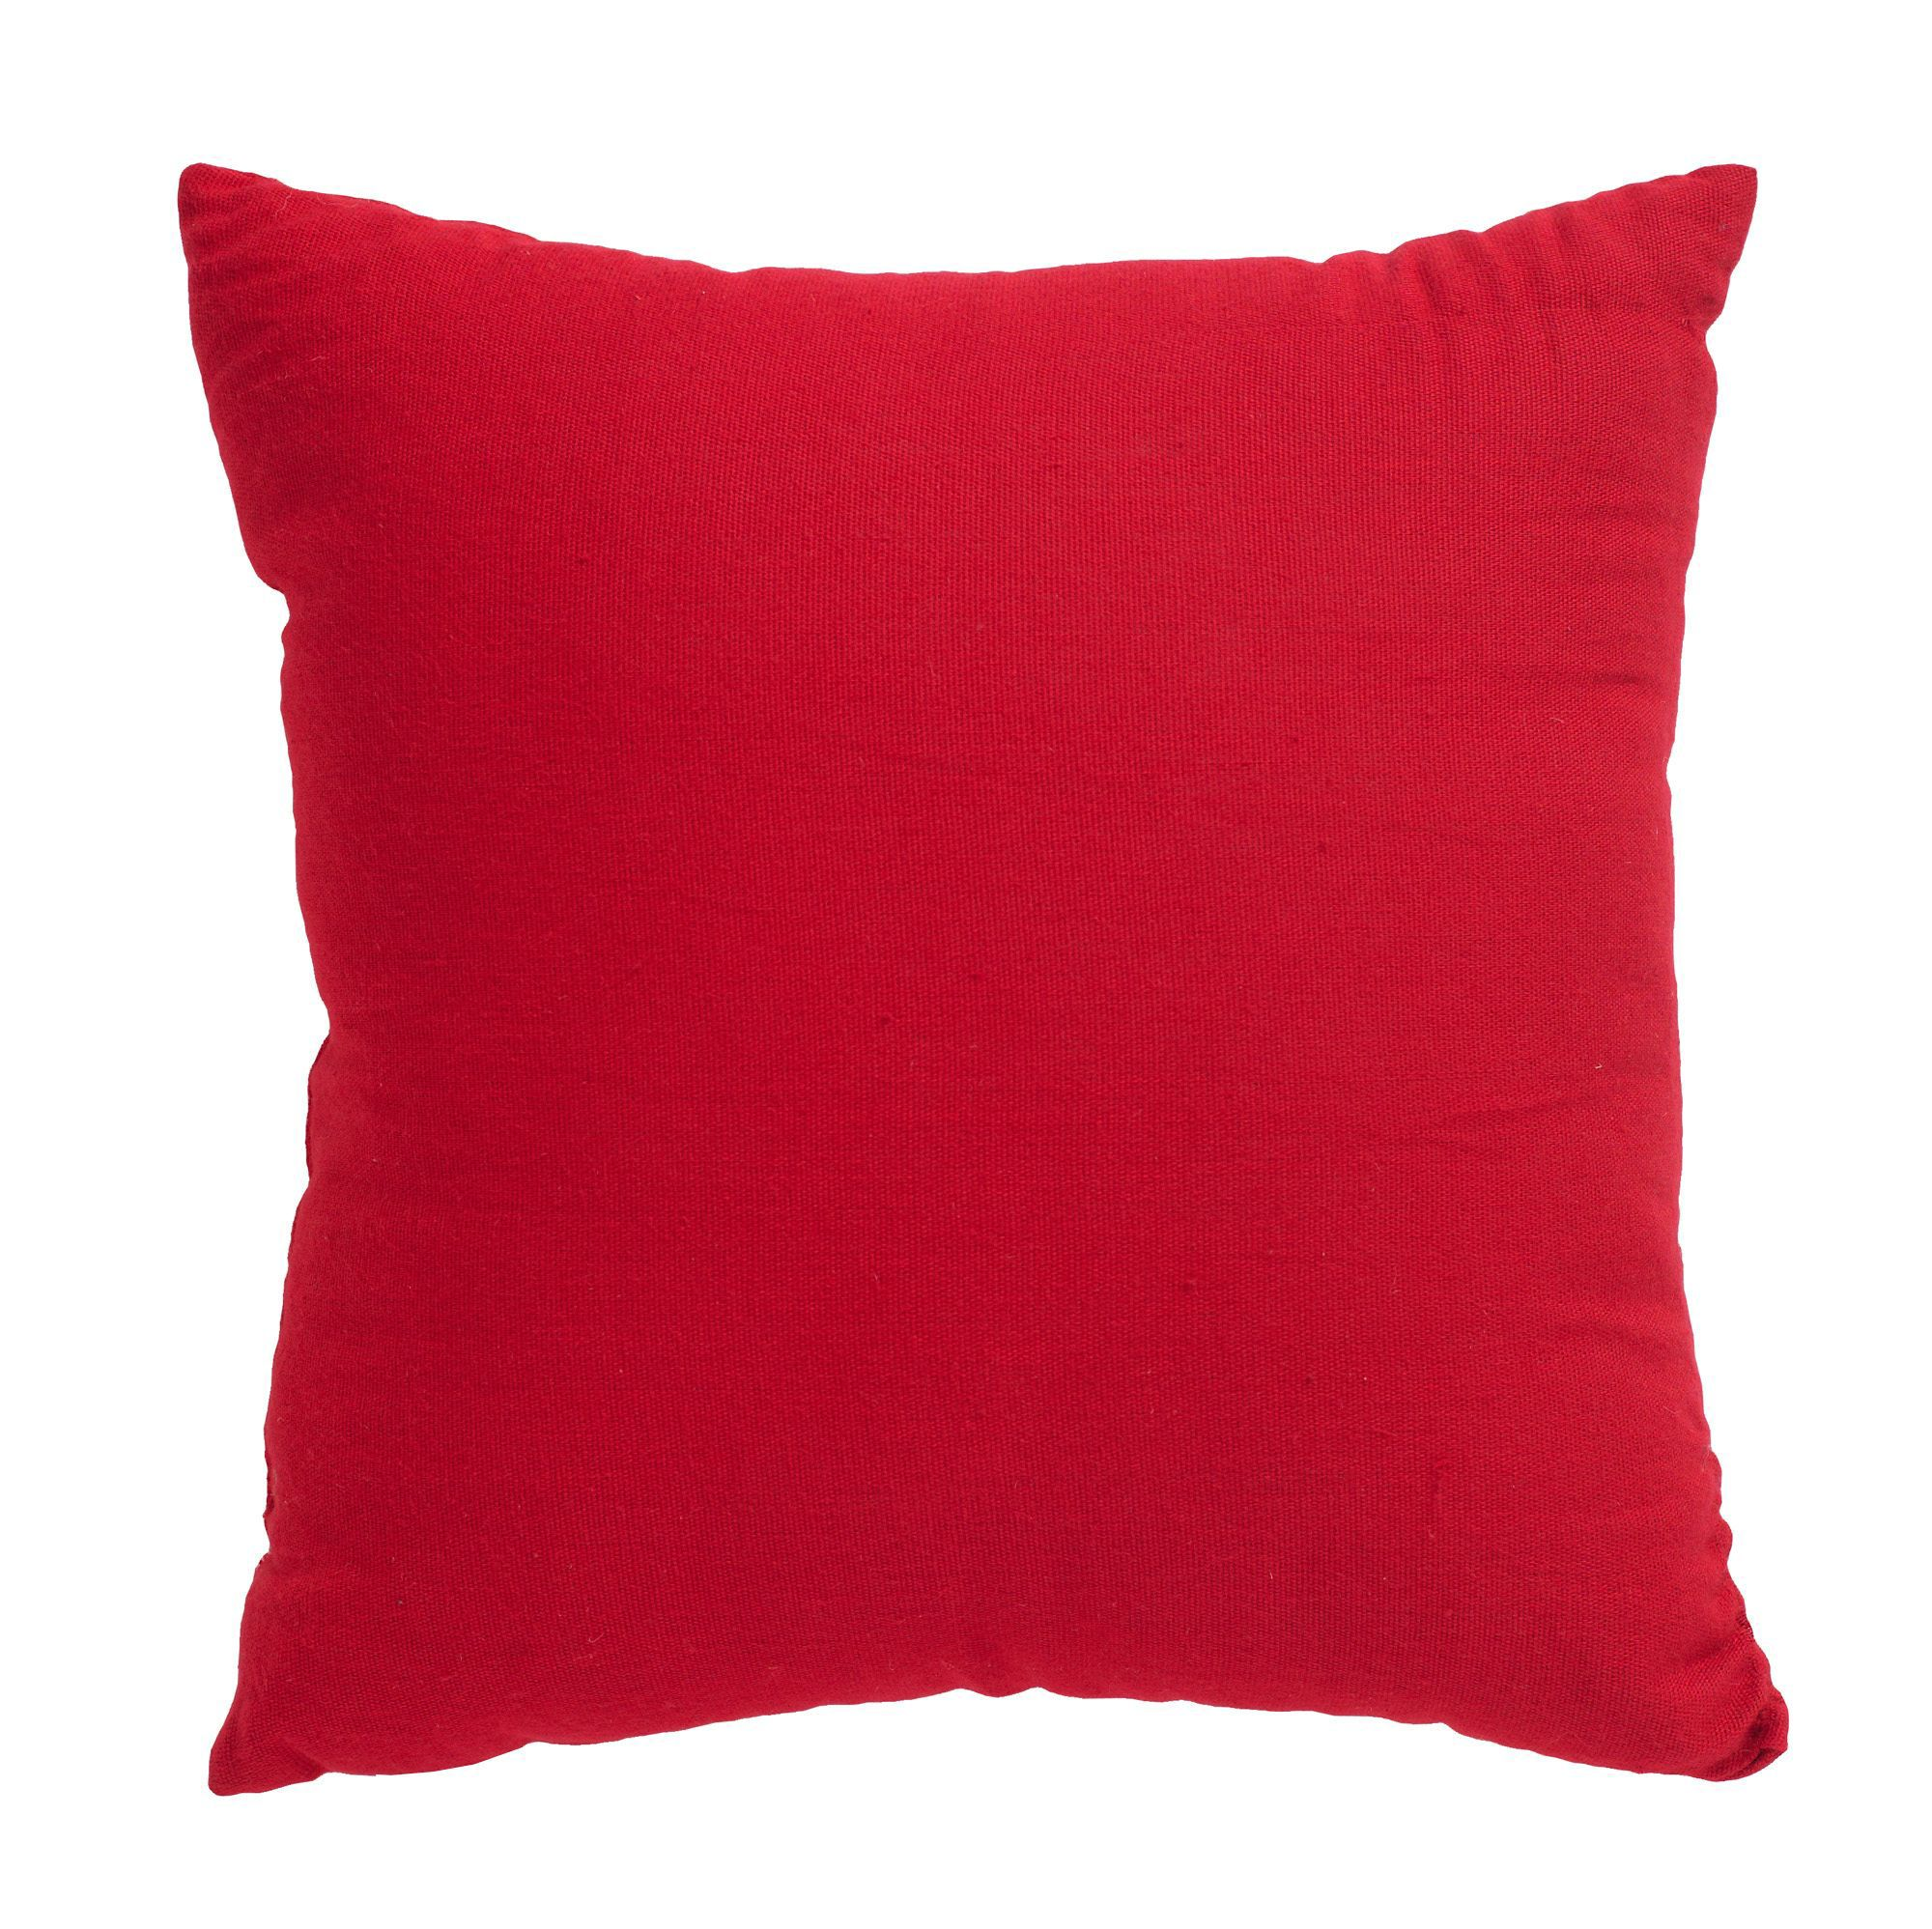 Plain Strawberry Red Cushion Departments Diy At B Amp Q